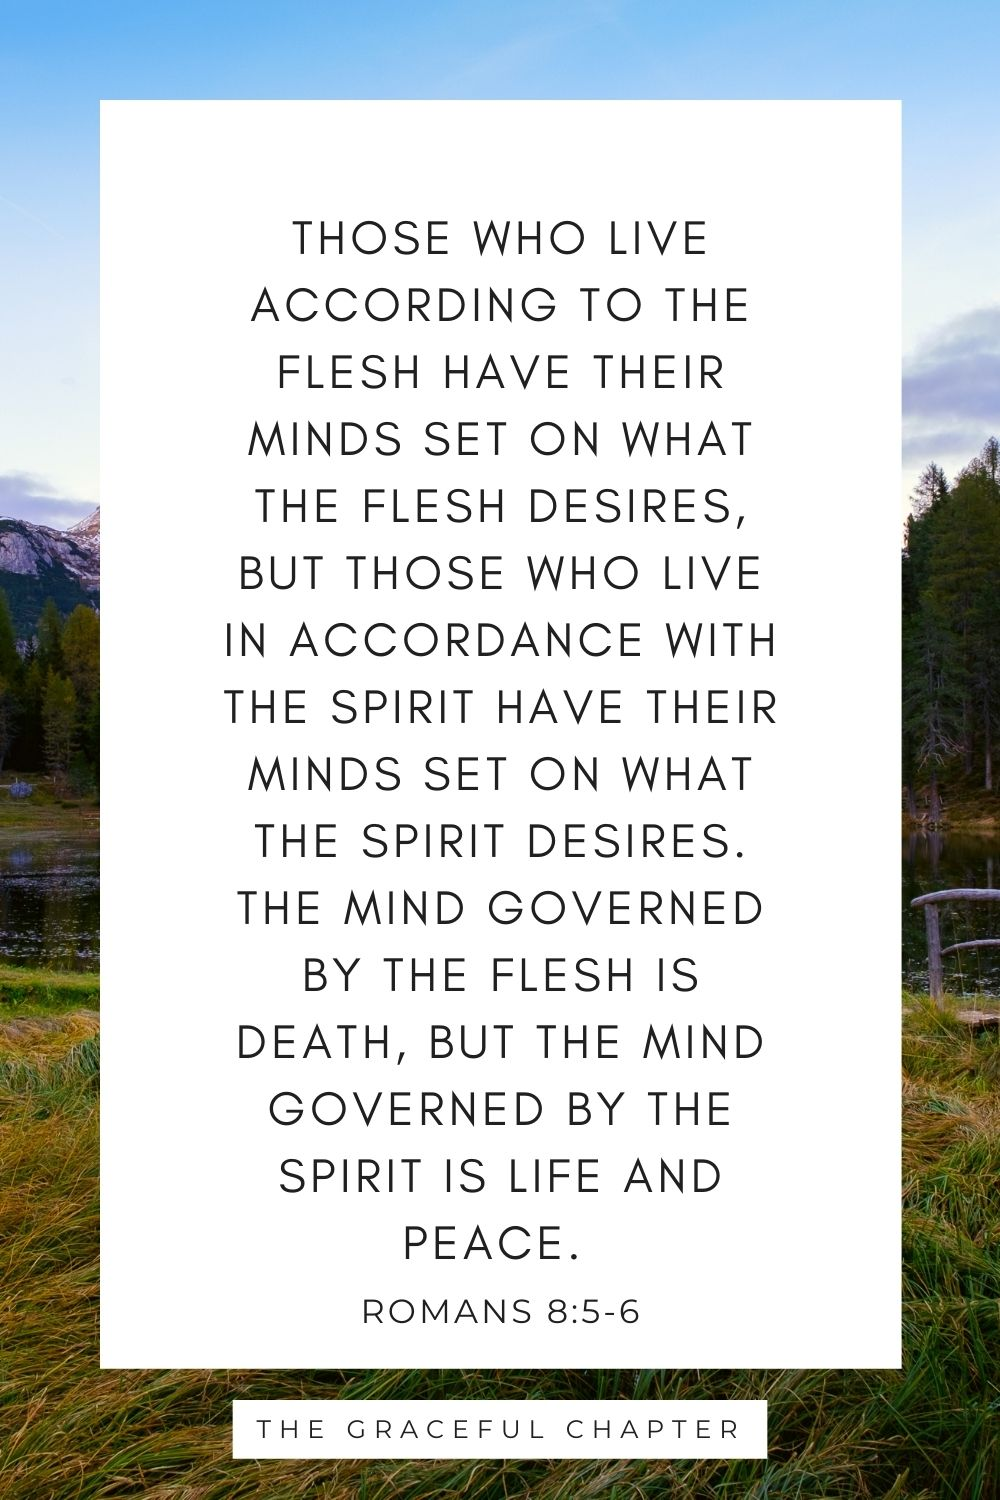 The mind governed by the flesh is death, but the mind governed by the Spirit is life and peace. Romans 8:5-6